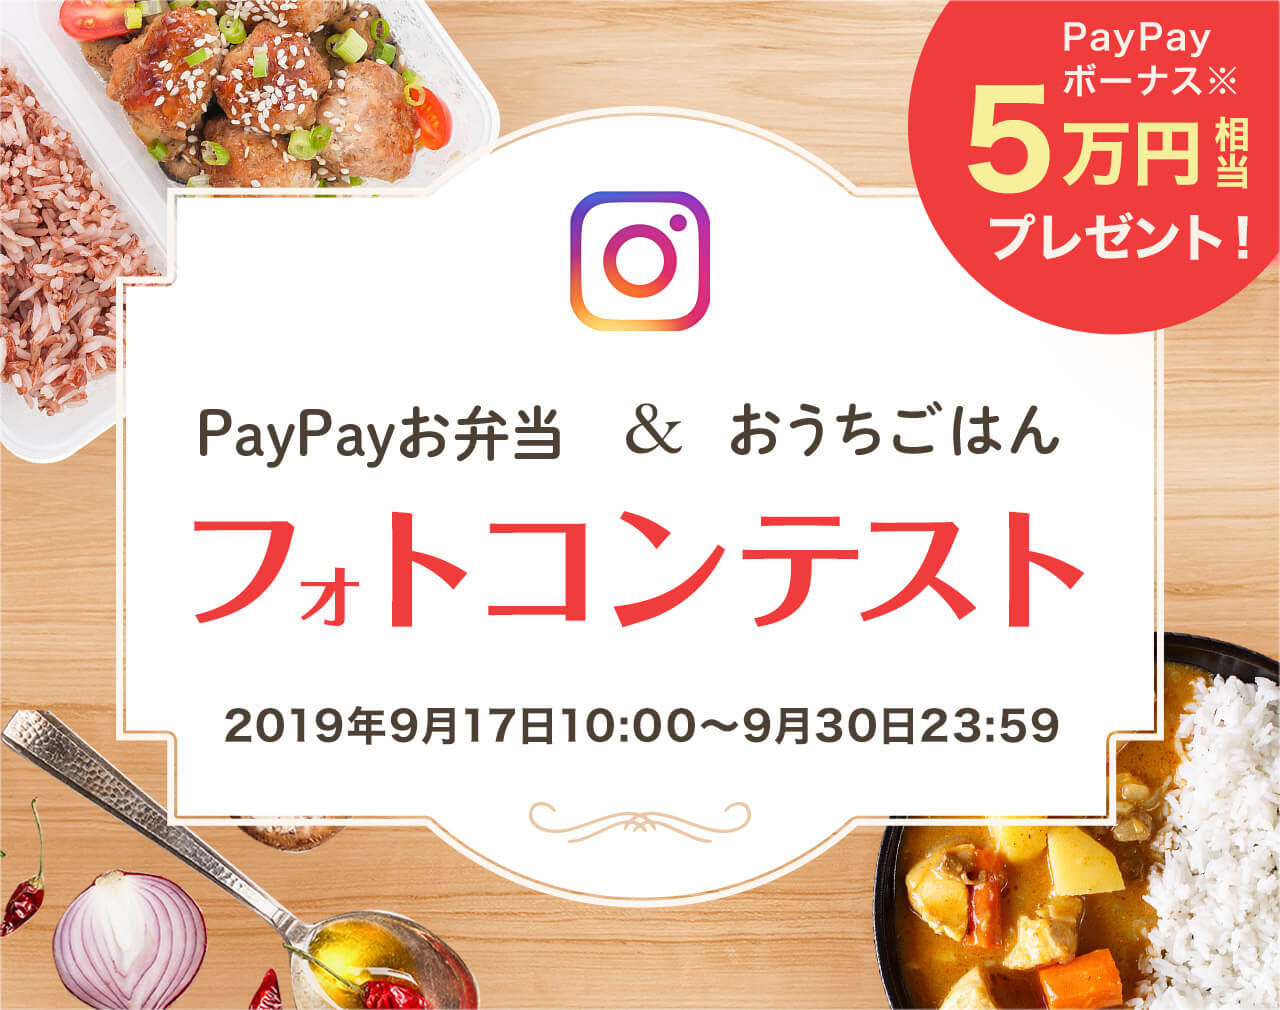 https://image.paypay.ne.jp/page/event/instagram/images/img_mv_01.jpg